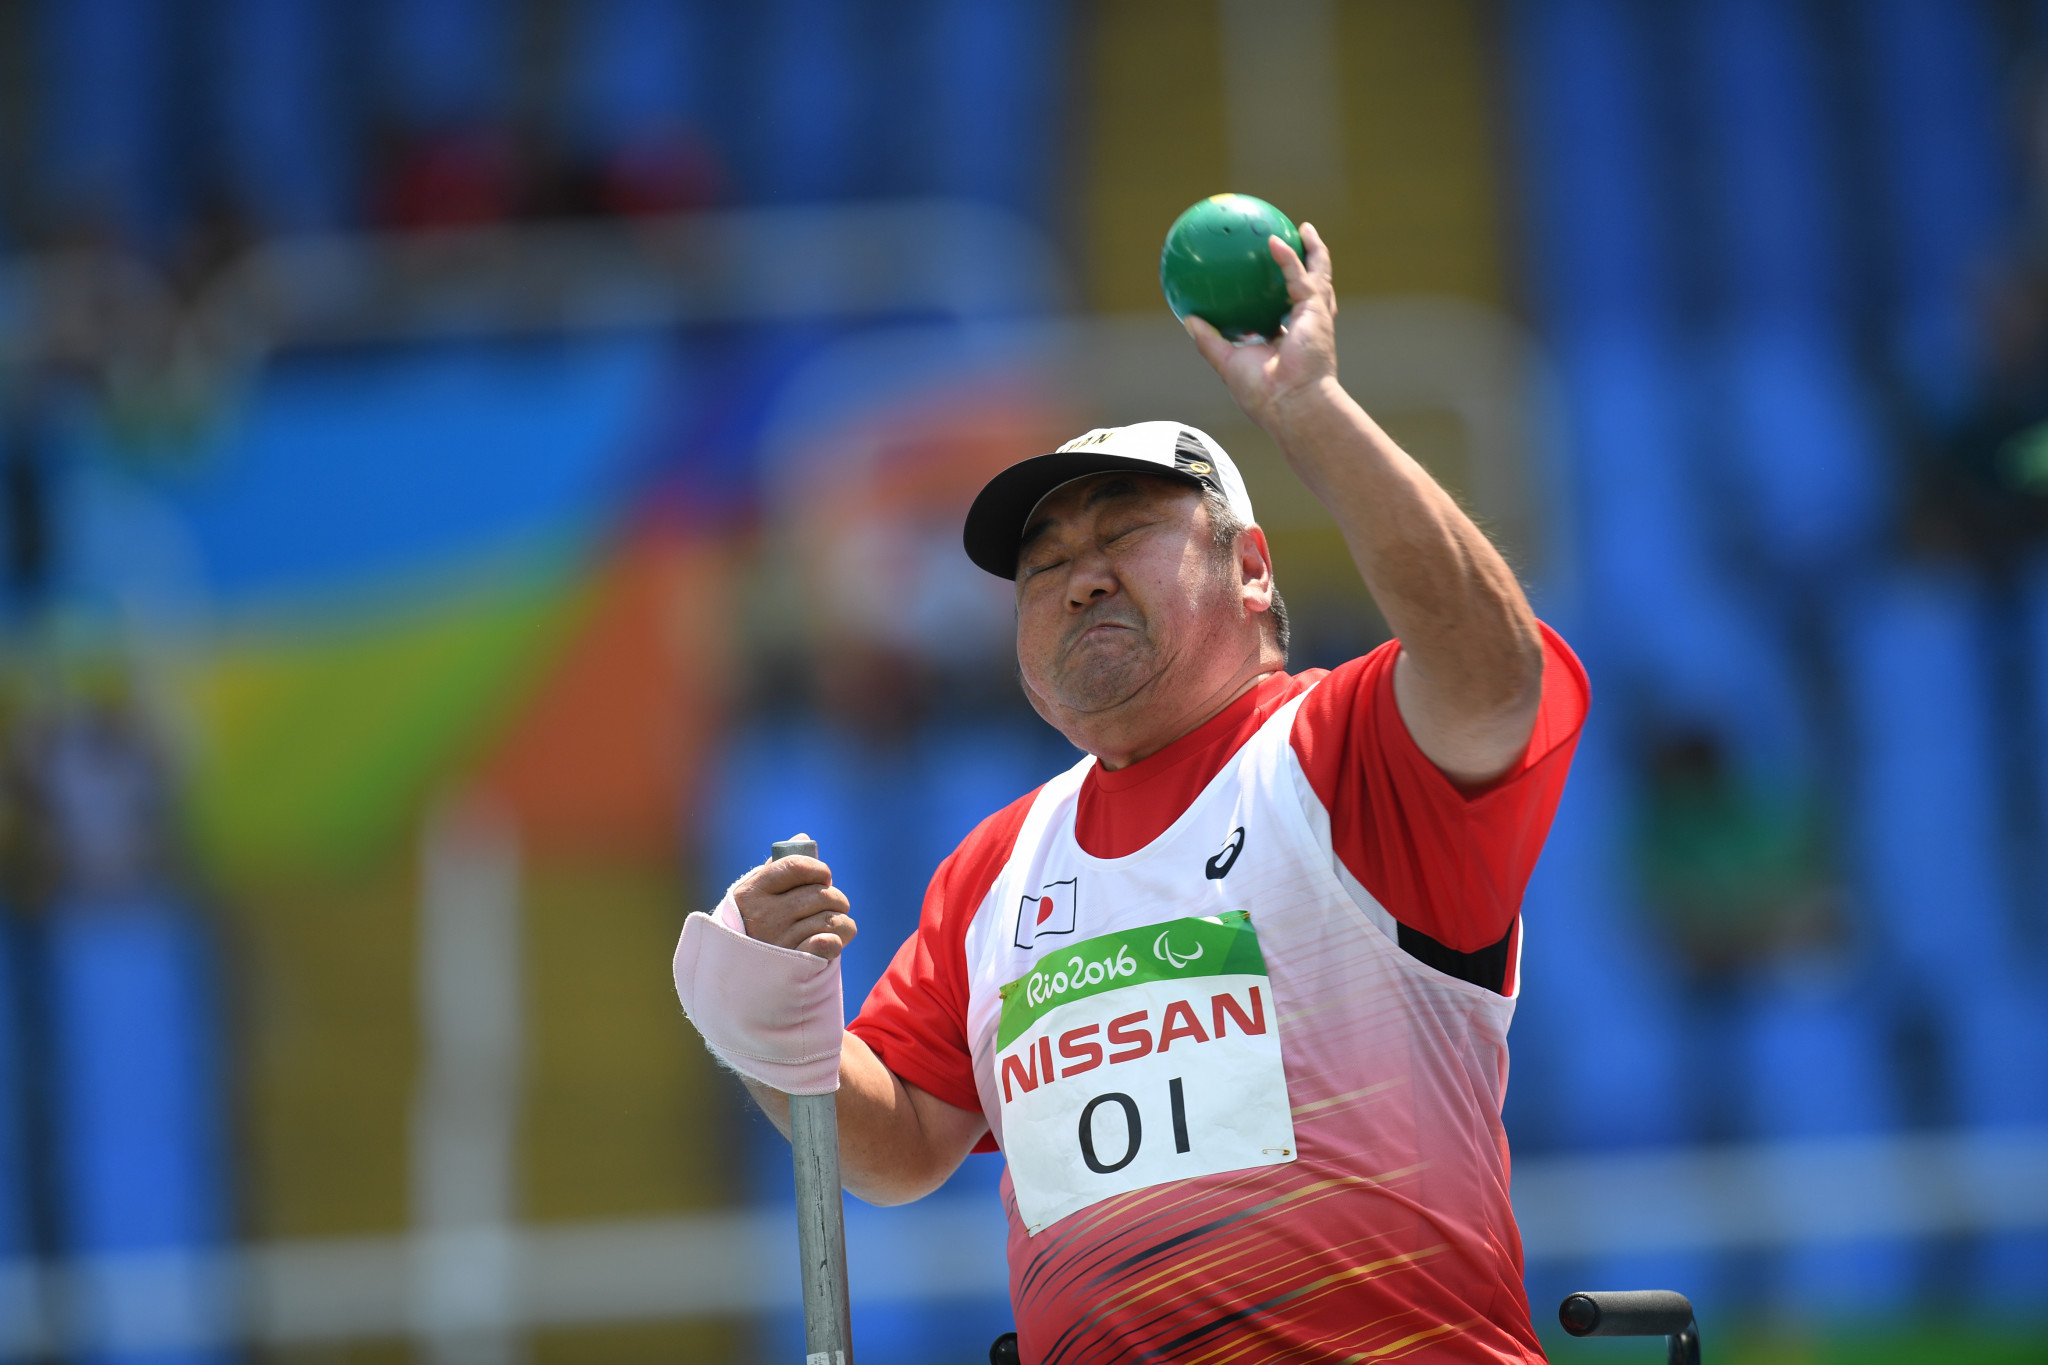 Shot putter Toshie Oi, who has yet to secure his place at Tokyo 2020, has decided to skip the Japan Para Athletics Championships ©Getty Images